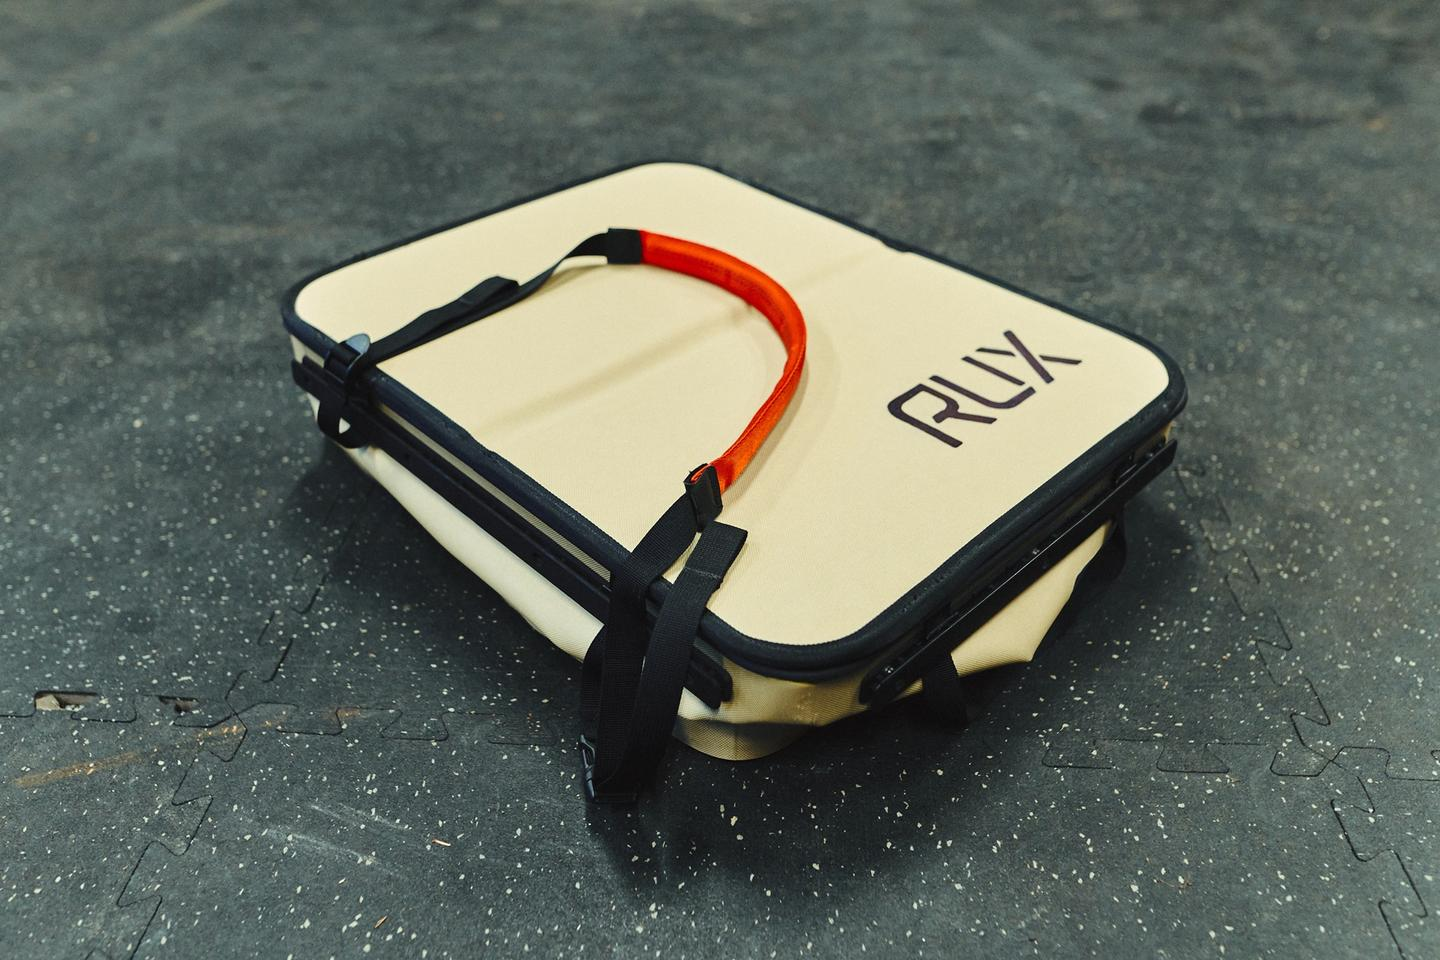 The Rux 70 packs down to just over 3 in tall, making it easy to stash and store when not in use